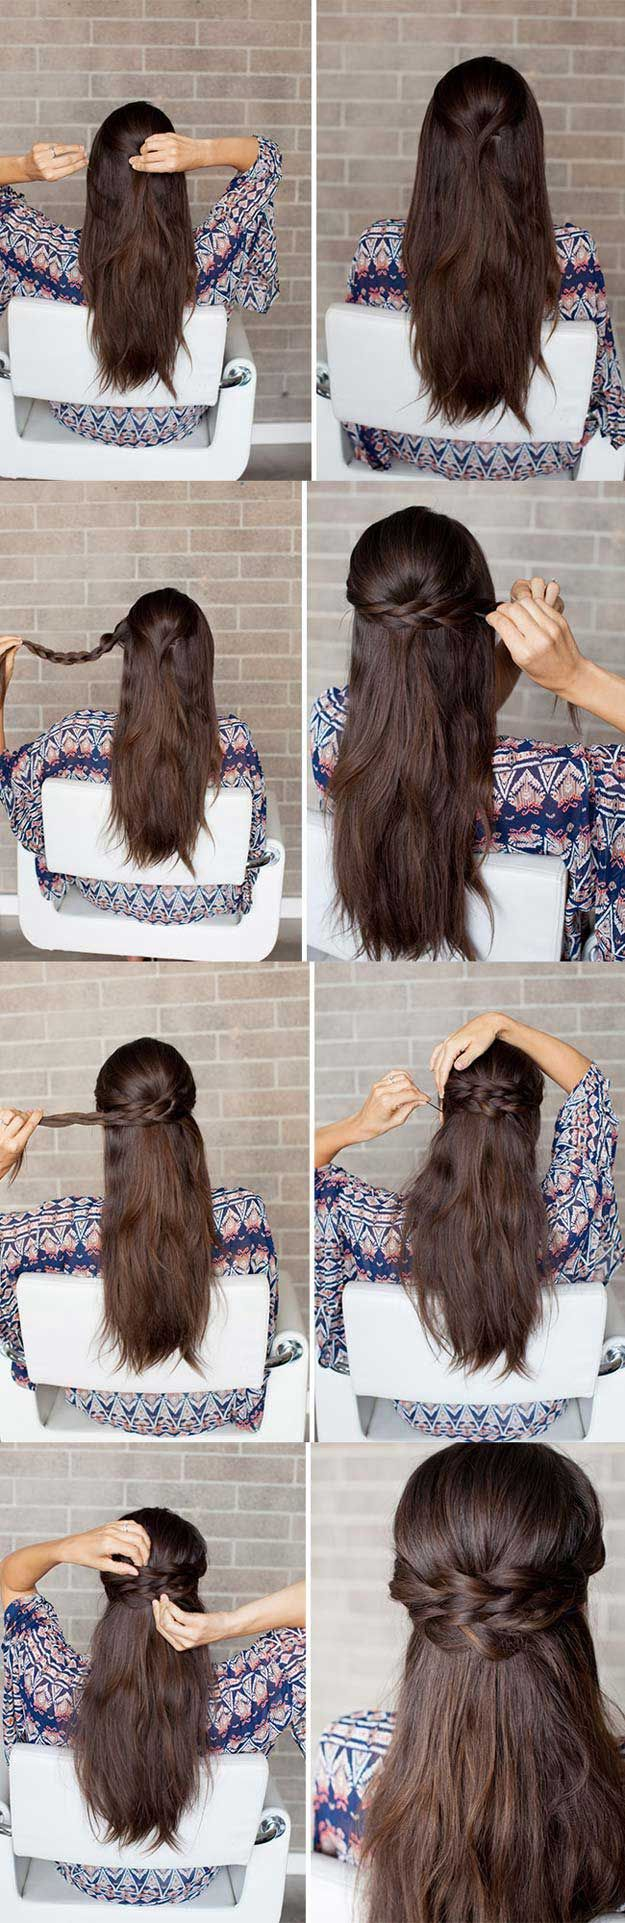 Amazing Half Up-Half Down Hairstyles For Long Hair - Braided Half-Up How-to - Easy Step By Step Tutorials And Tips For Hair Styles And Hair Ideas For Prom, For The Bridesmaid, For Homecoming, Wedding, And Bride. Try An Updo Or A Half Up Half Down Hairstyle For Long Hair Or A Casual Half Ponytail For Blonde Or Brunette Hair. Easy Tutorial For Straight Hair Including A Top Knot, Loose Curls, And The Simple Half Bun. Styles And Hairdos For Veils, For Summer, For Fall, And For Winter. Try Bangs…